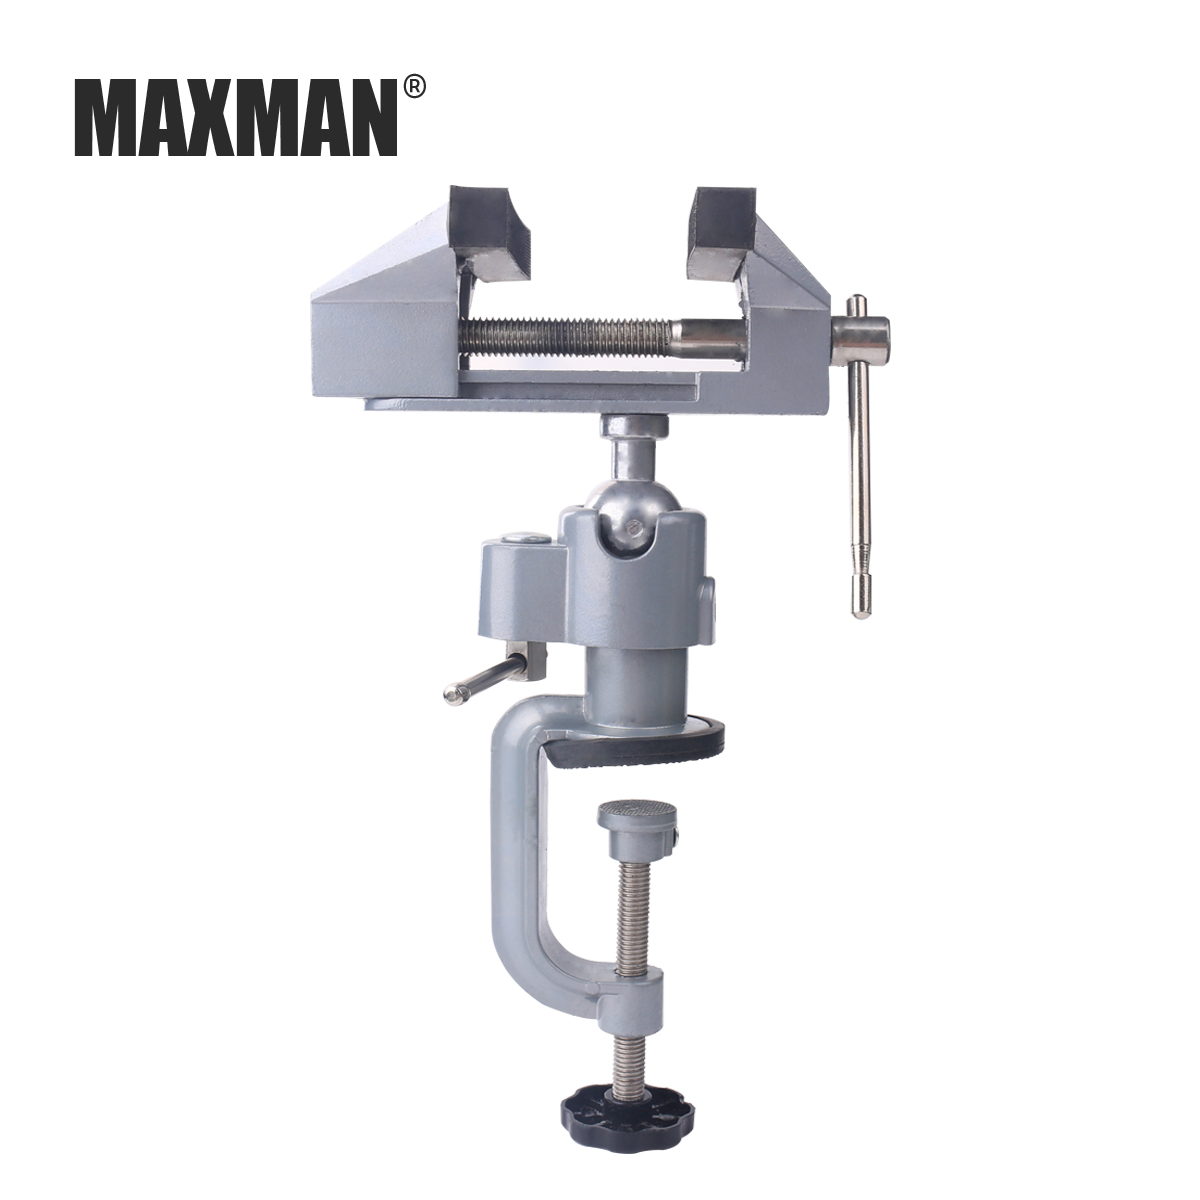 MAXMAN Bench Vise Aluminum 75mm Table Screw Vise Bench Clamp Screw Vise for DIY Craft Mold Fixed Repair Tool mini table vice adjustable max 37mm plastic screw bench vise for diy jewelry craft repair tools dremel power tools accessories